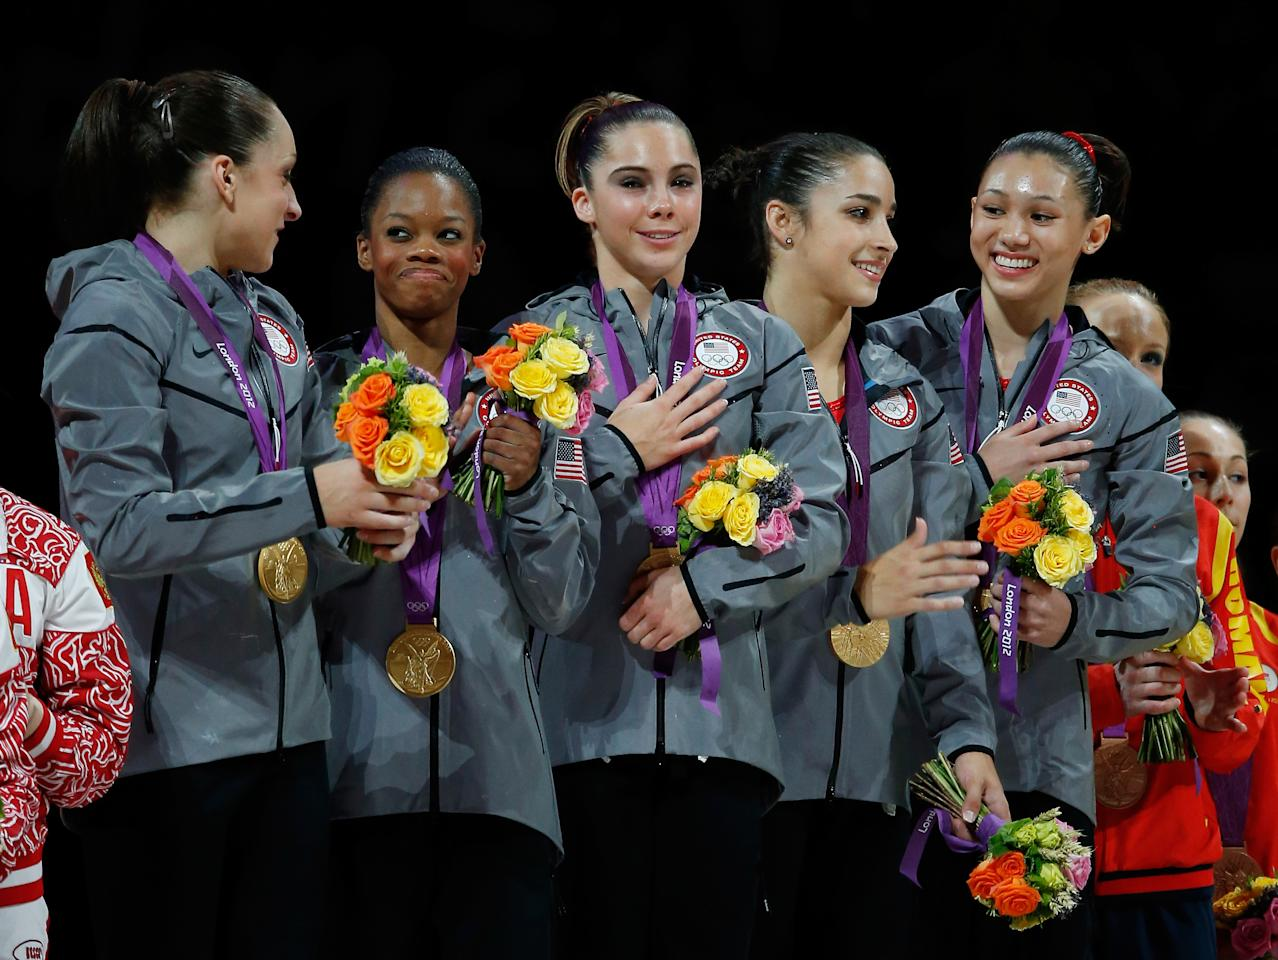 Jordyn Wieber, Gabrielle Douglas, Mc Kayla Maroney, Alexandra Raisman and Kyla Ross of the United States celebrate on the podium after winning the gold medal in the Artistic Gymnastics Women's Team final on Day 4 of the London 2012 Olympic Games at North Greenwich Arena on July 31, 2012 in London, England.  (Photo by Jamie Squire/Getty Images)